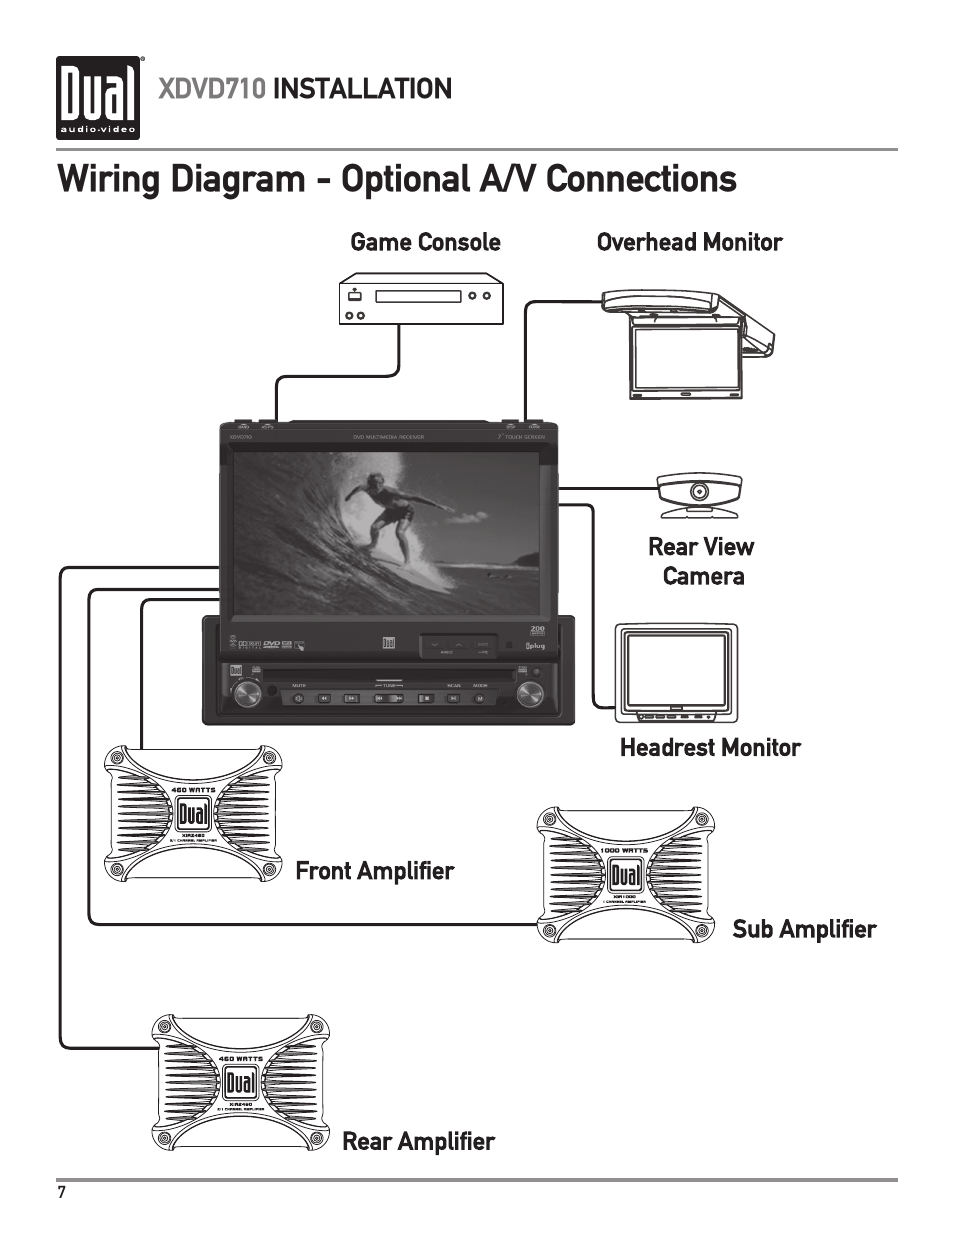 dual-xdvd710-page8 Xdvd Wiring Diagram on